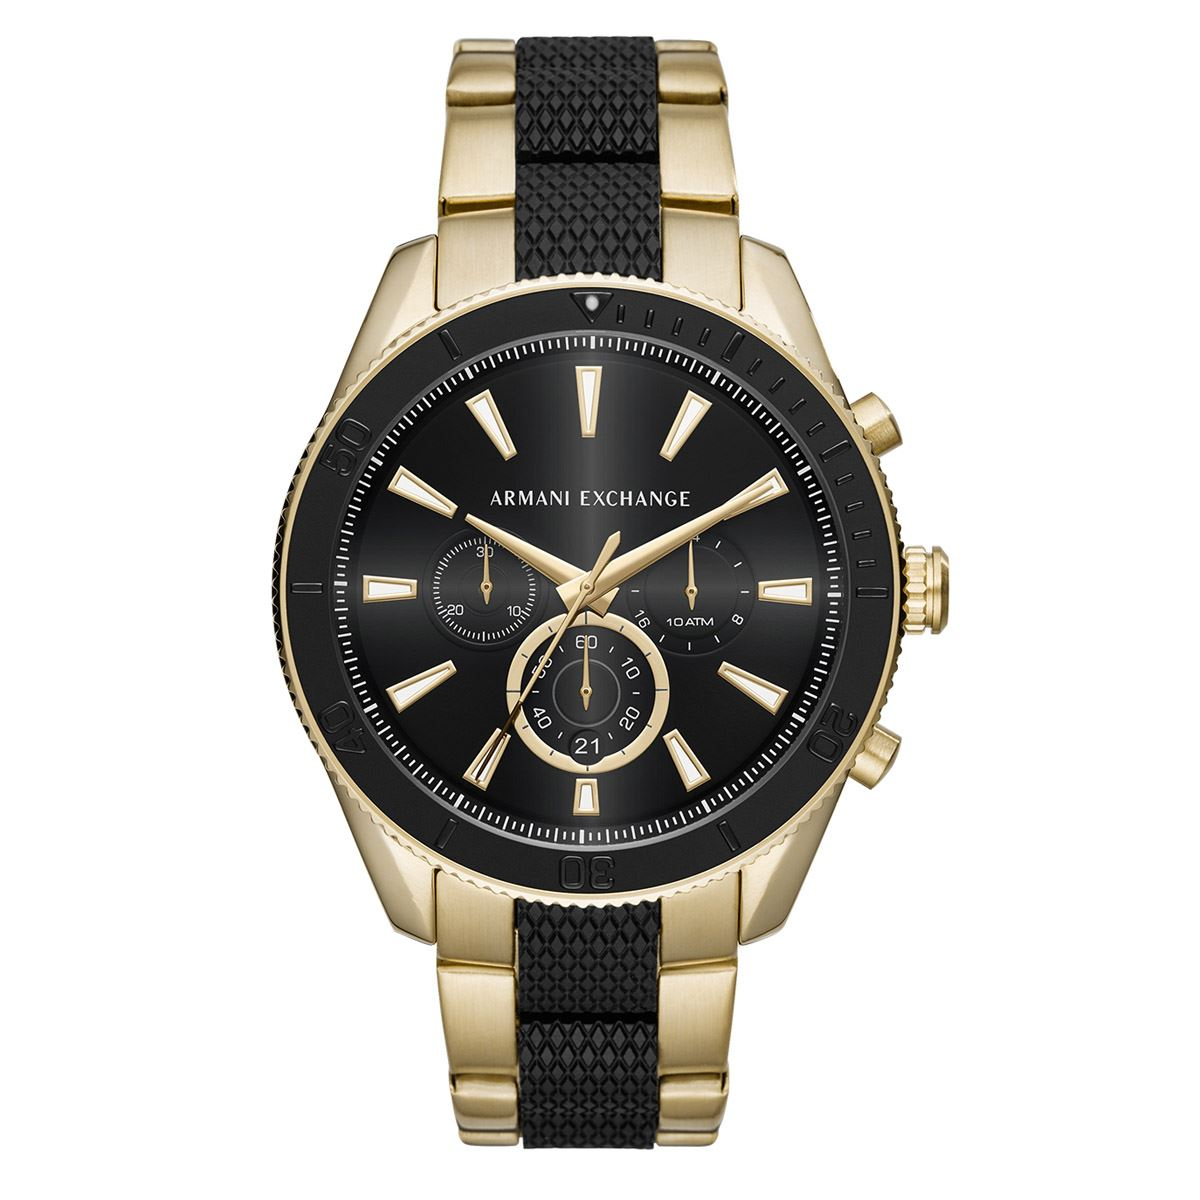 b7f009a9be64 Reloj Armani Exchange AX1814 Caballero